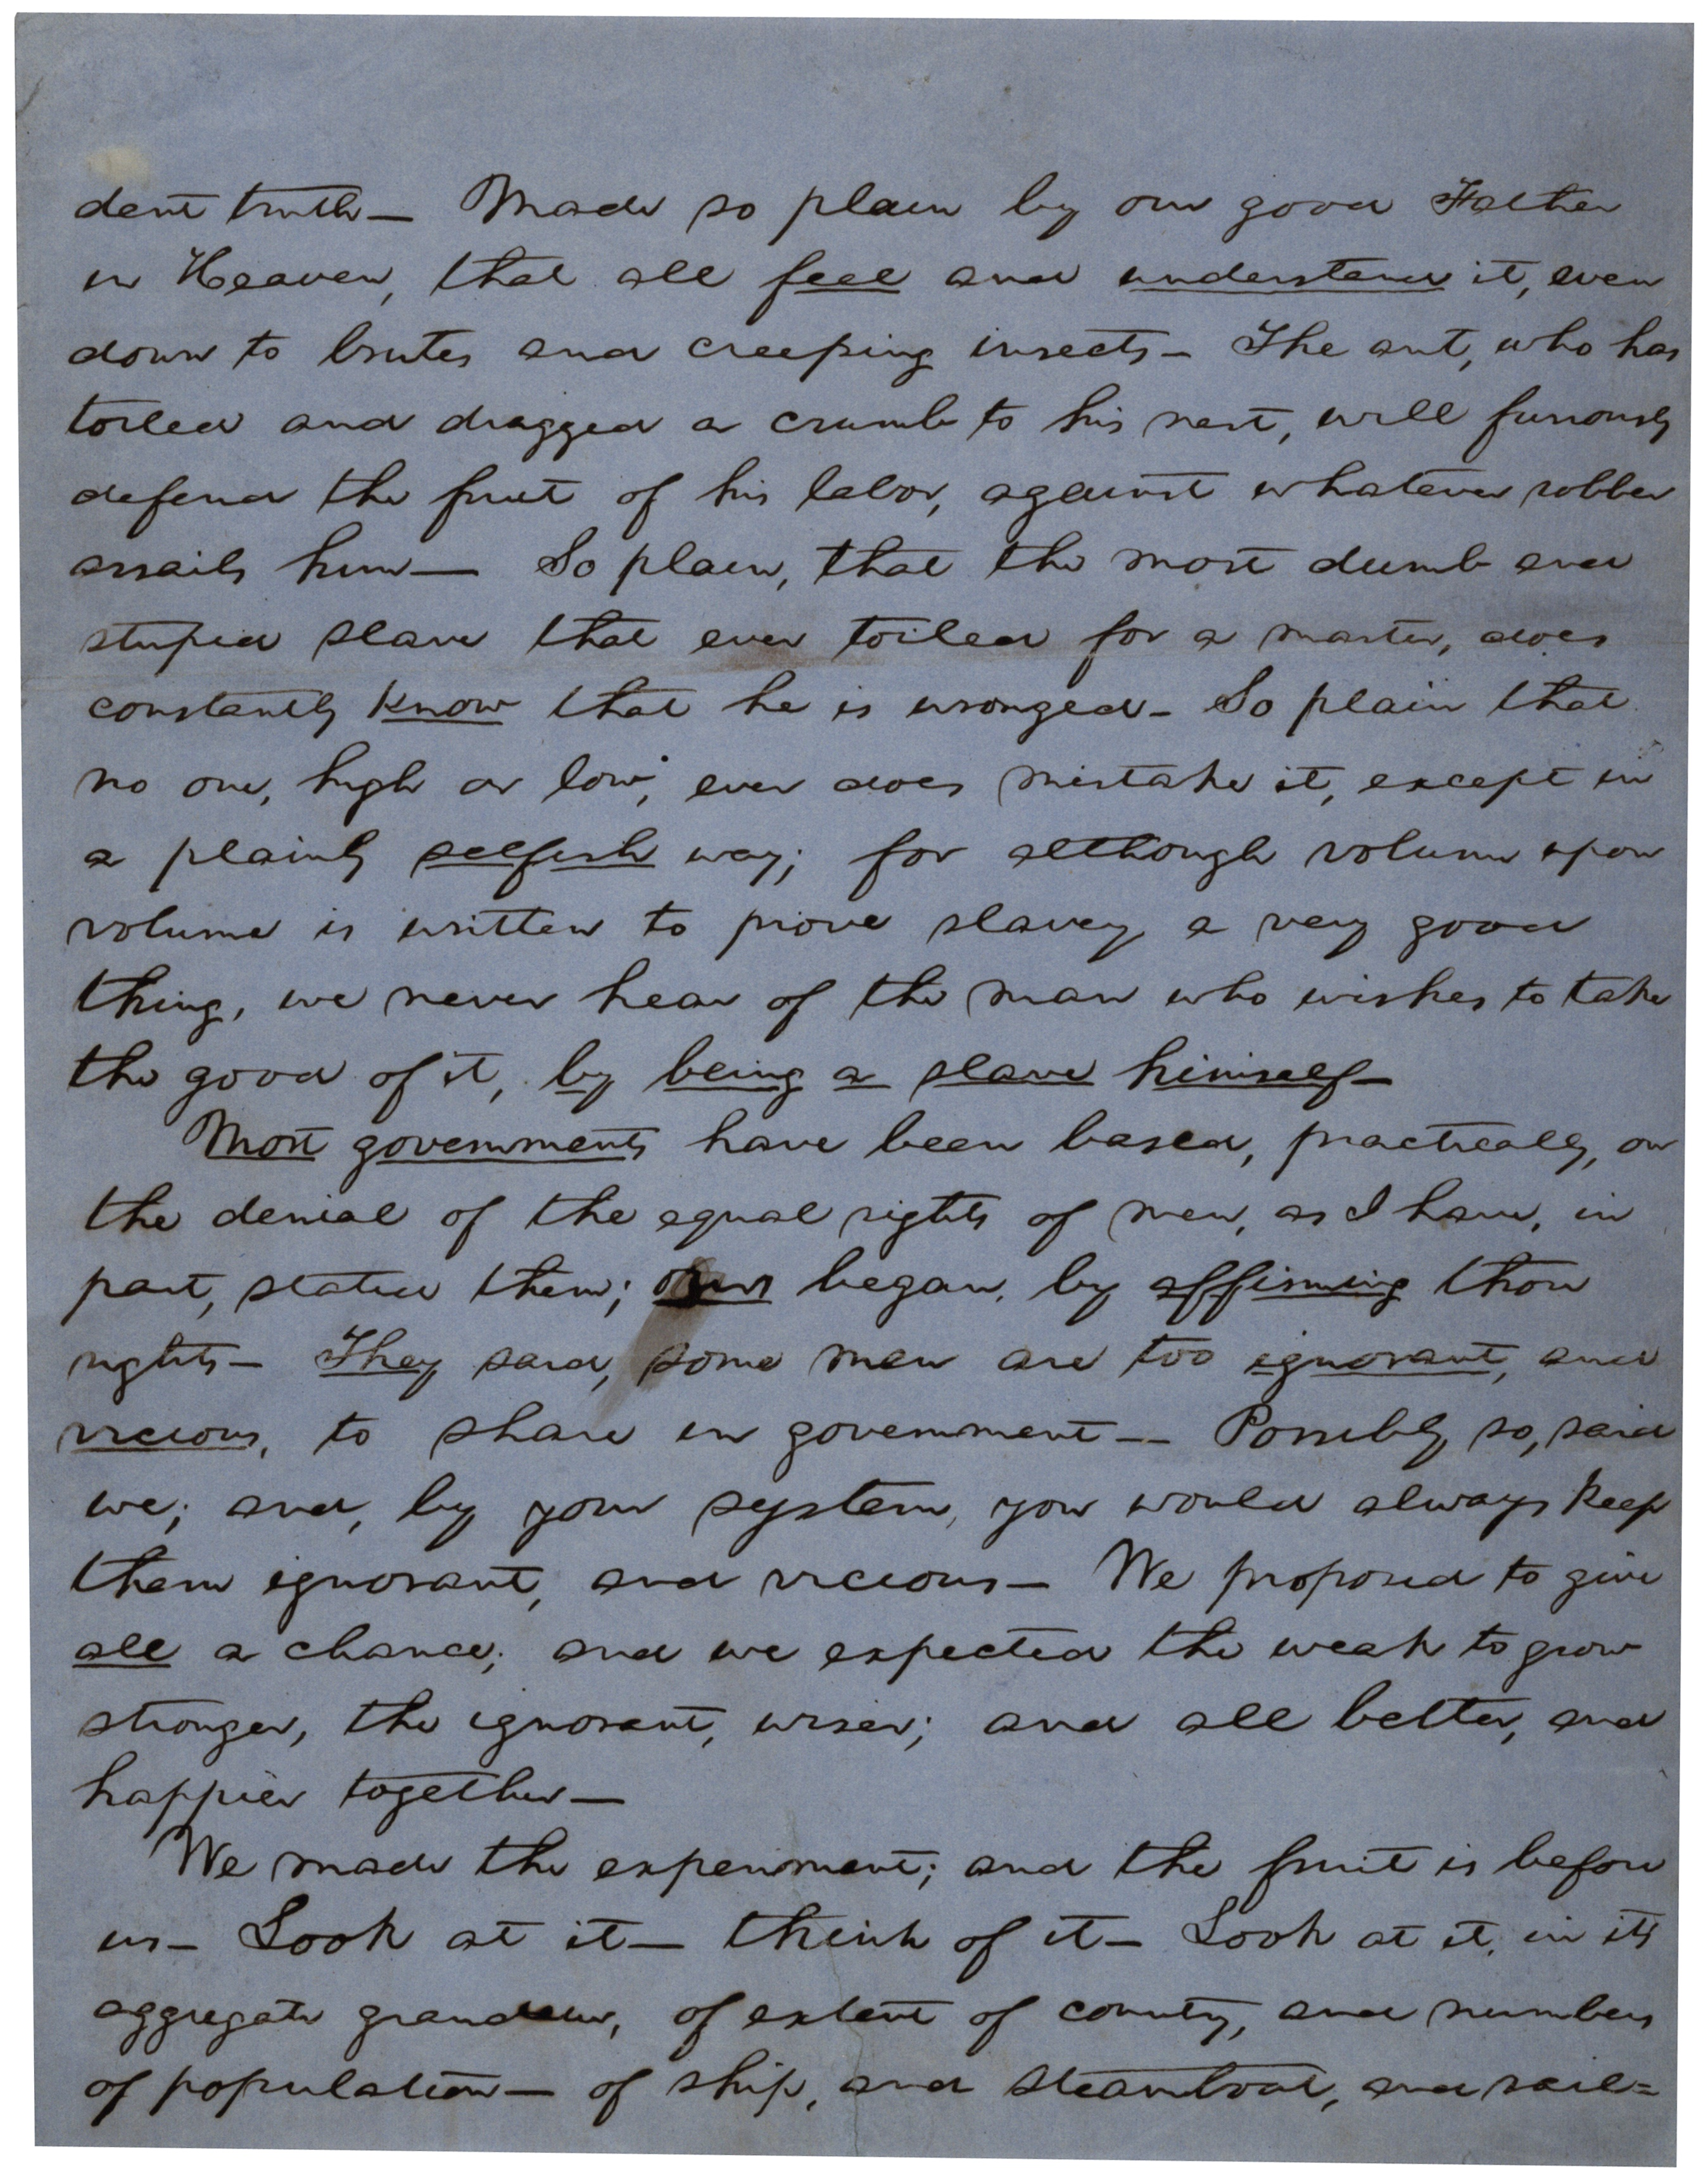 Abraham Lincoln, speech fragment on slavery and the American government, ca. 185